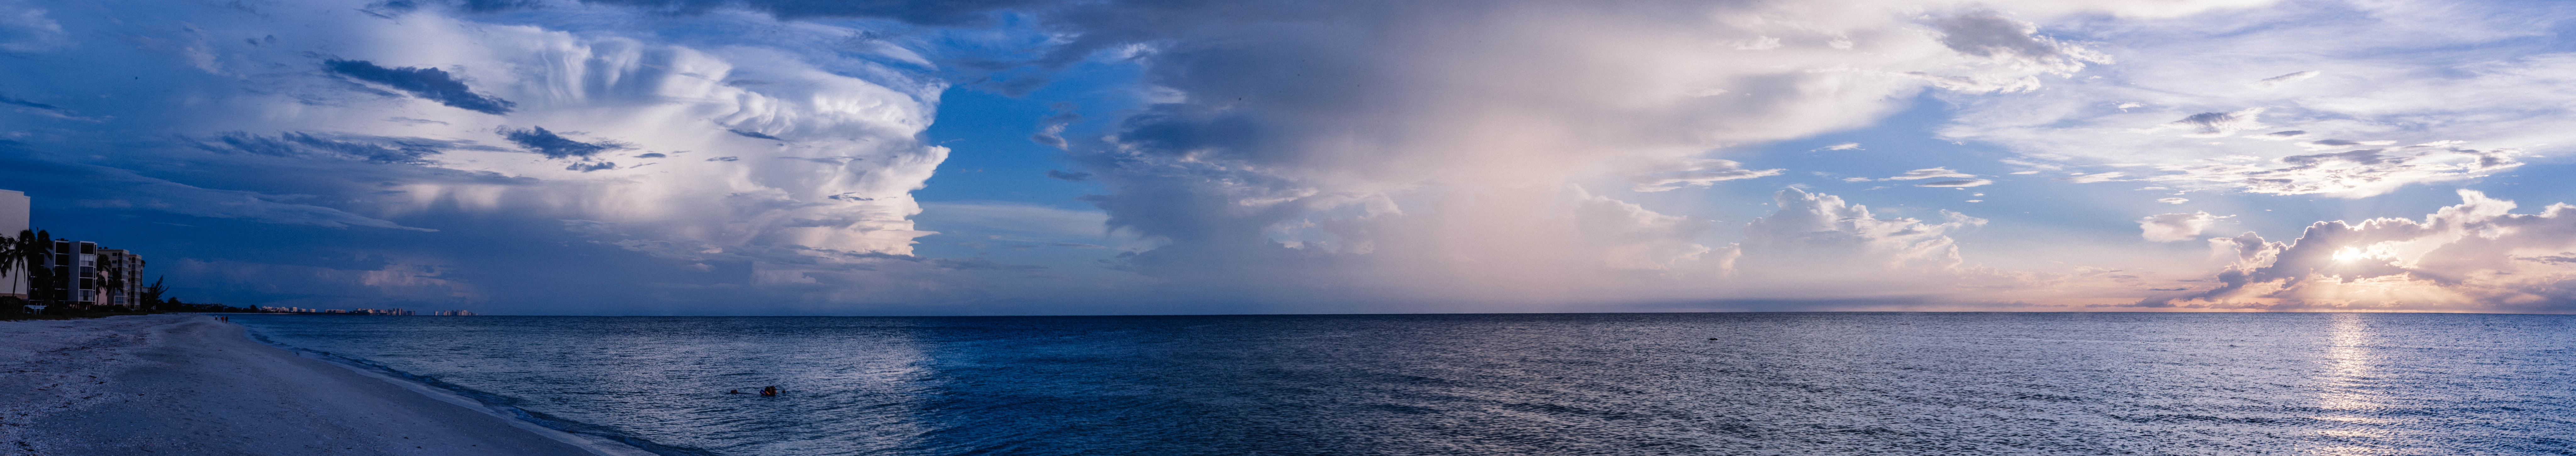 Large Body of Water Under Cloudy Sky, Beach, Panoramic, Travel, Sunset, HQ Photo